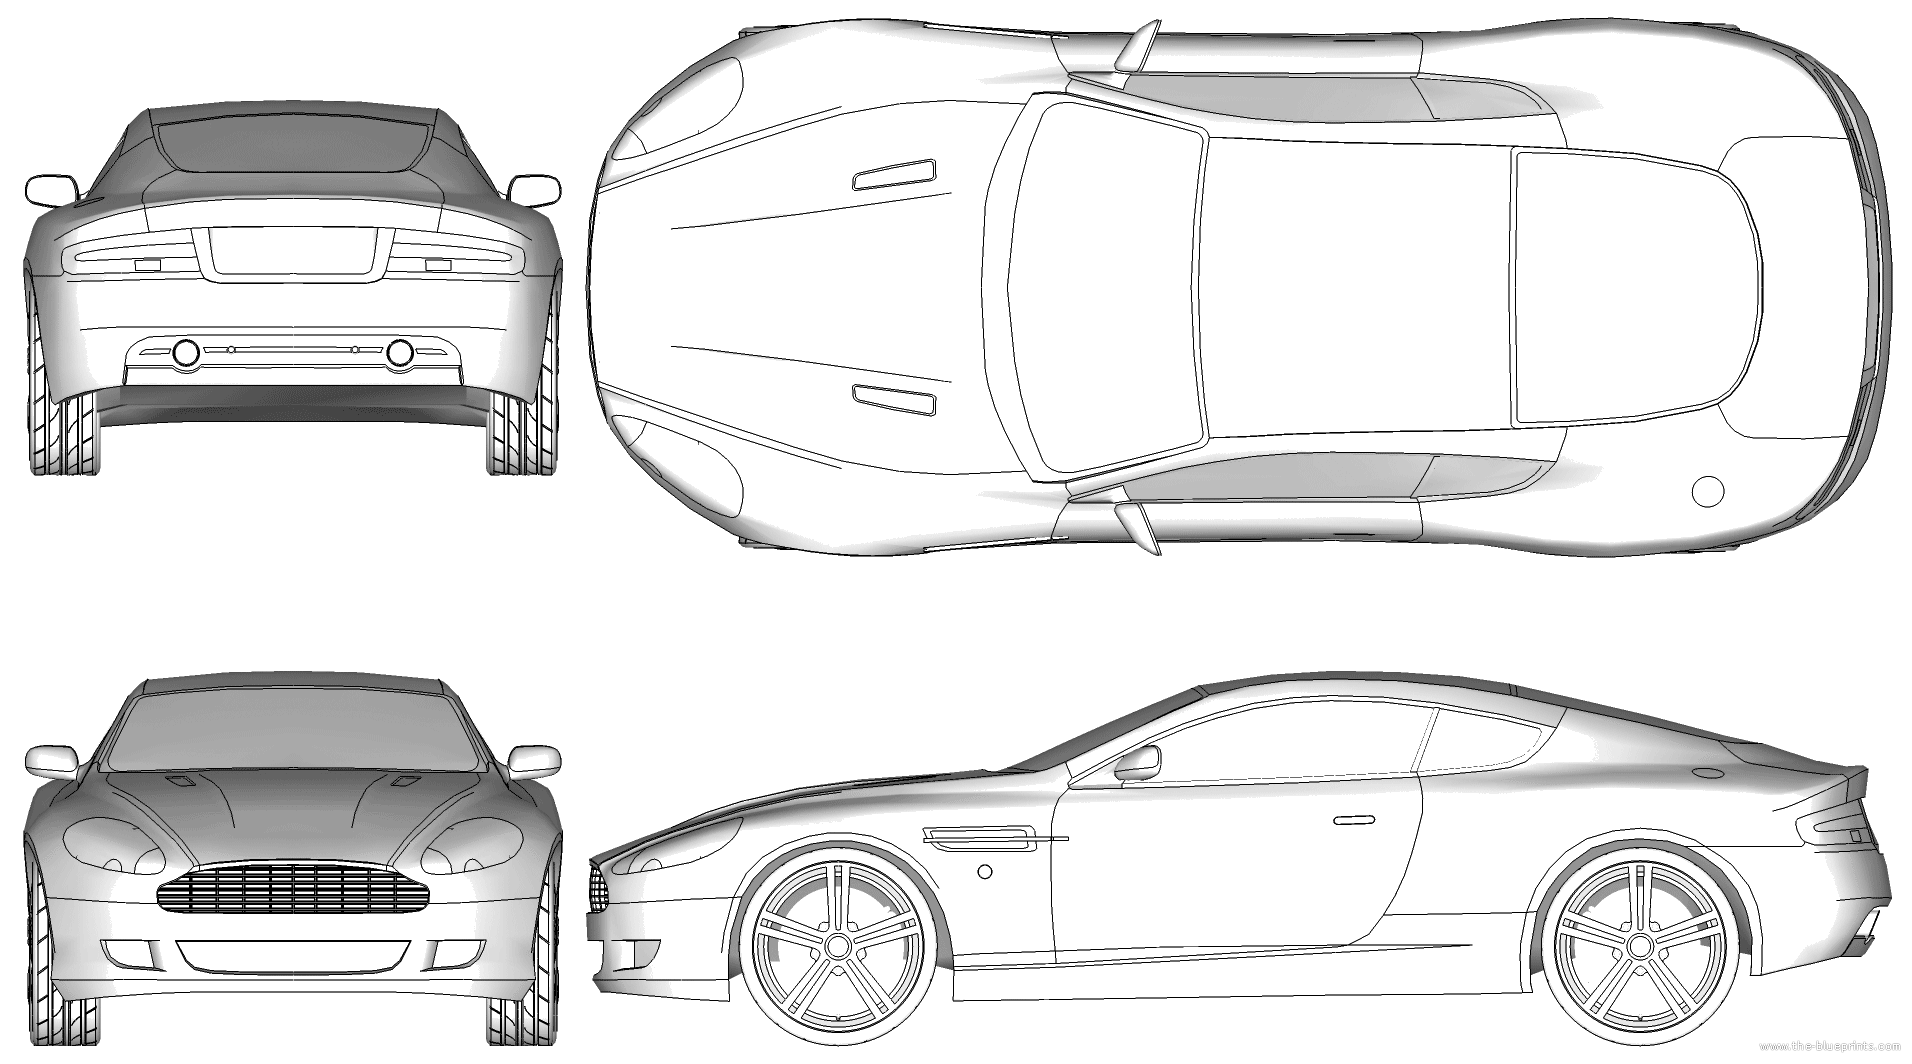 Blueprints > Cars > Aston Martin > Aston Martin DB9